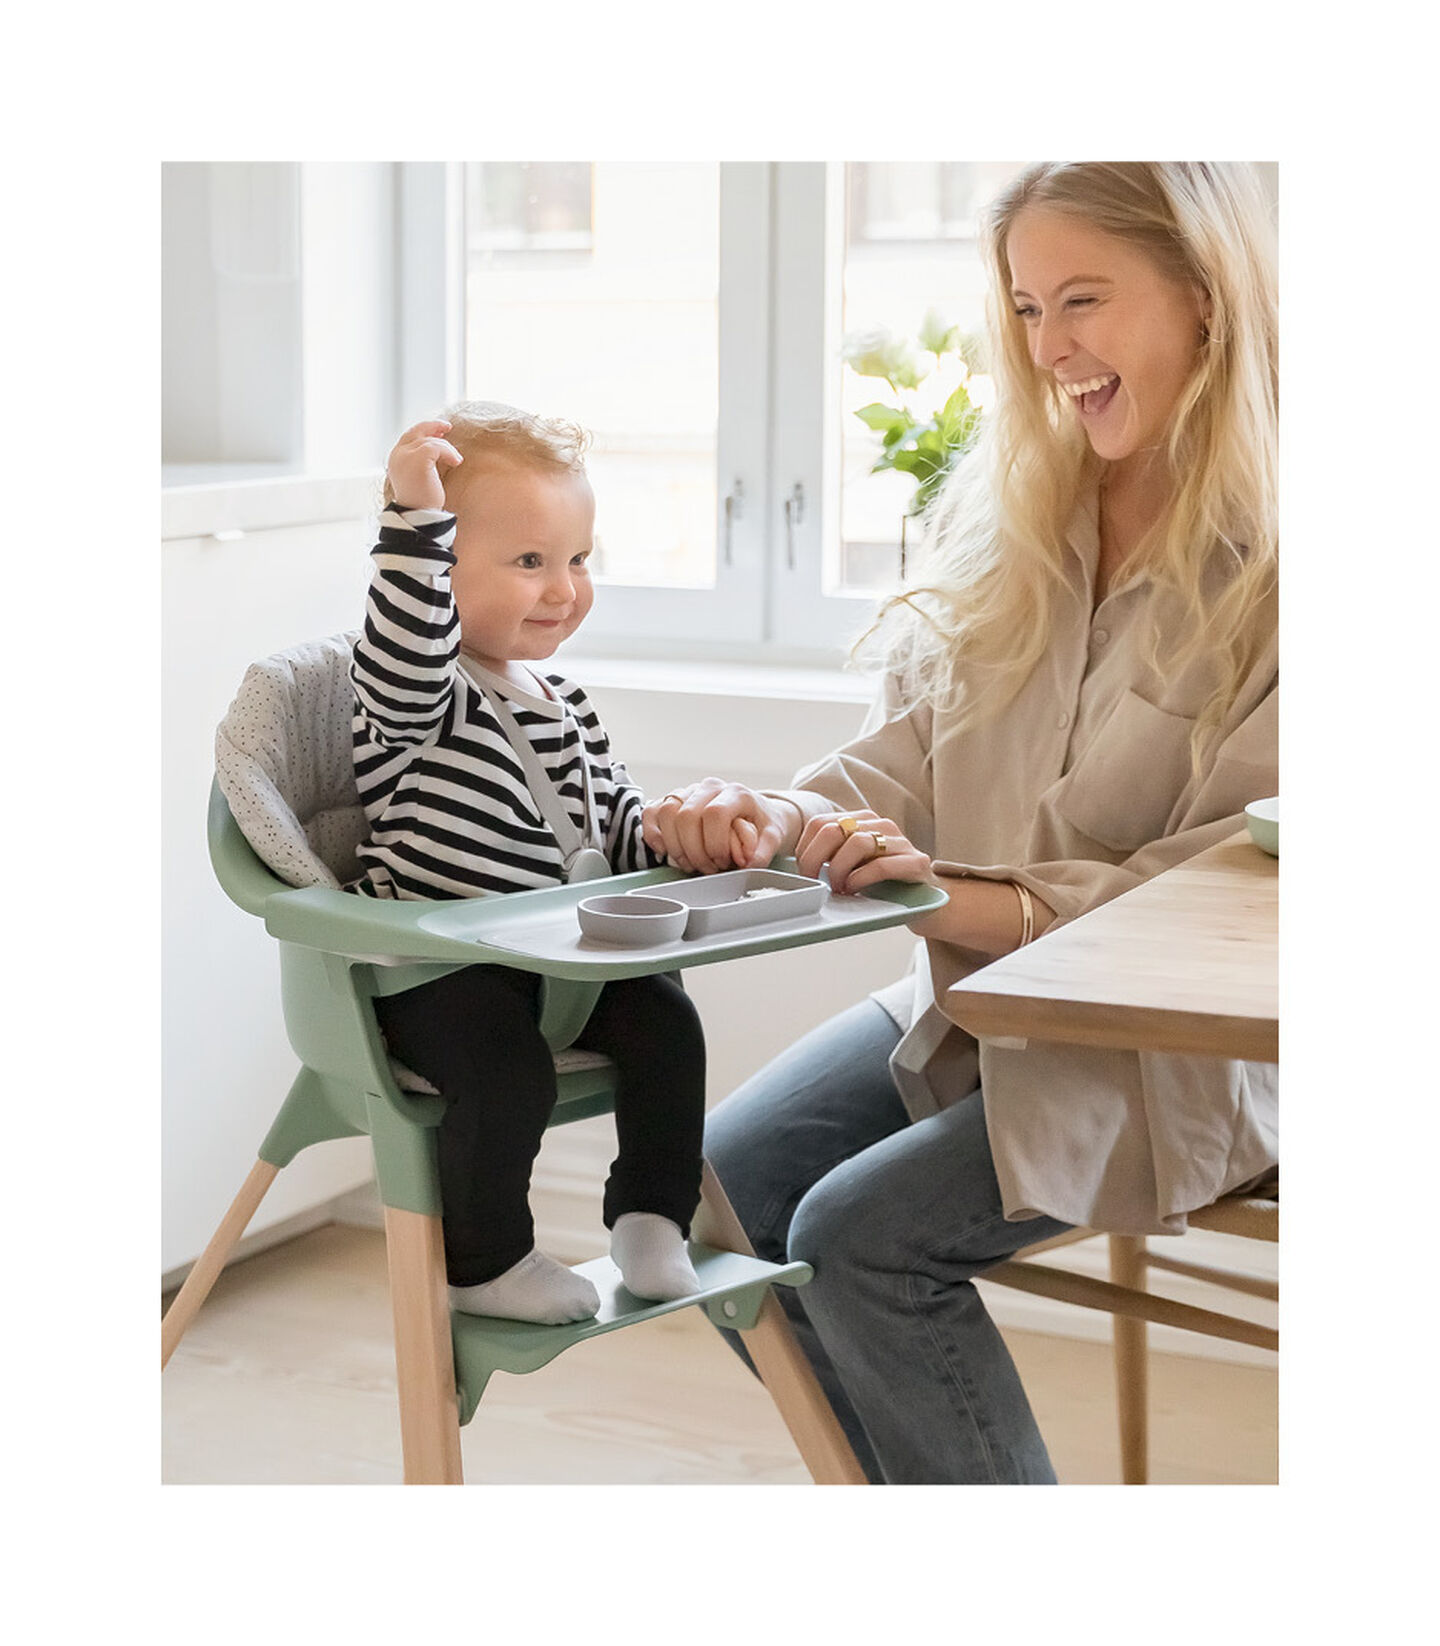 Stokke® Clikk™ High Chair. Natural Beech wood and Clover Green plastic parts.